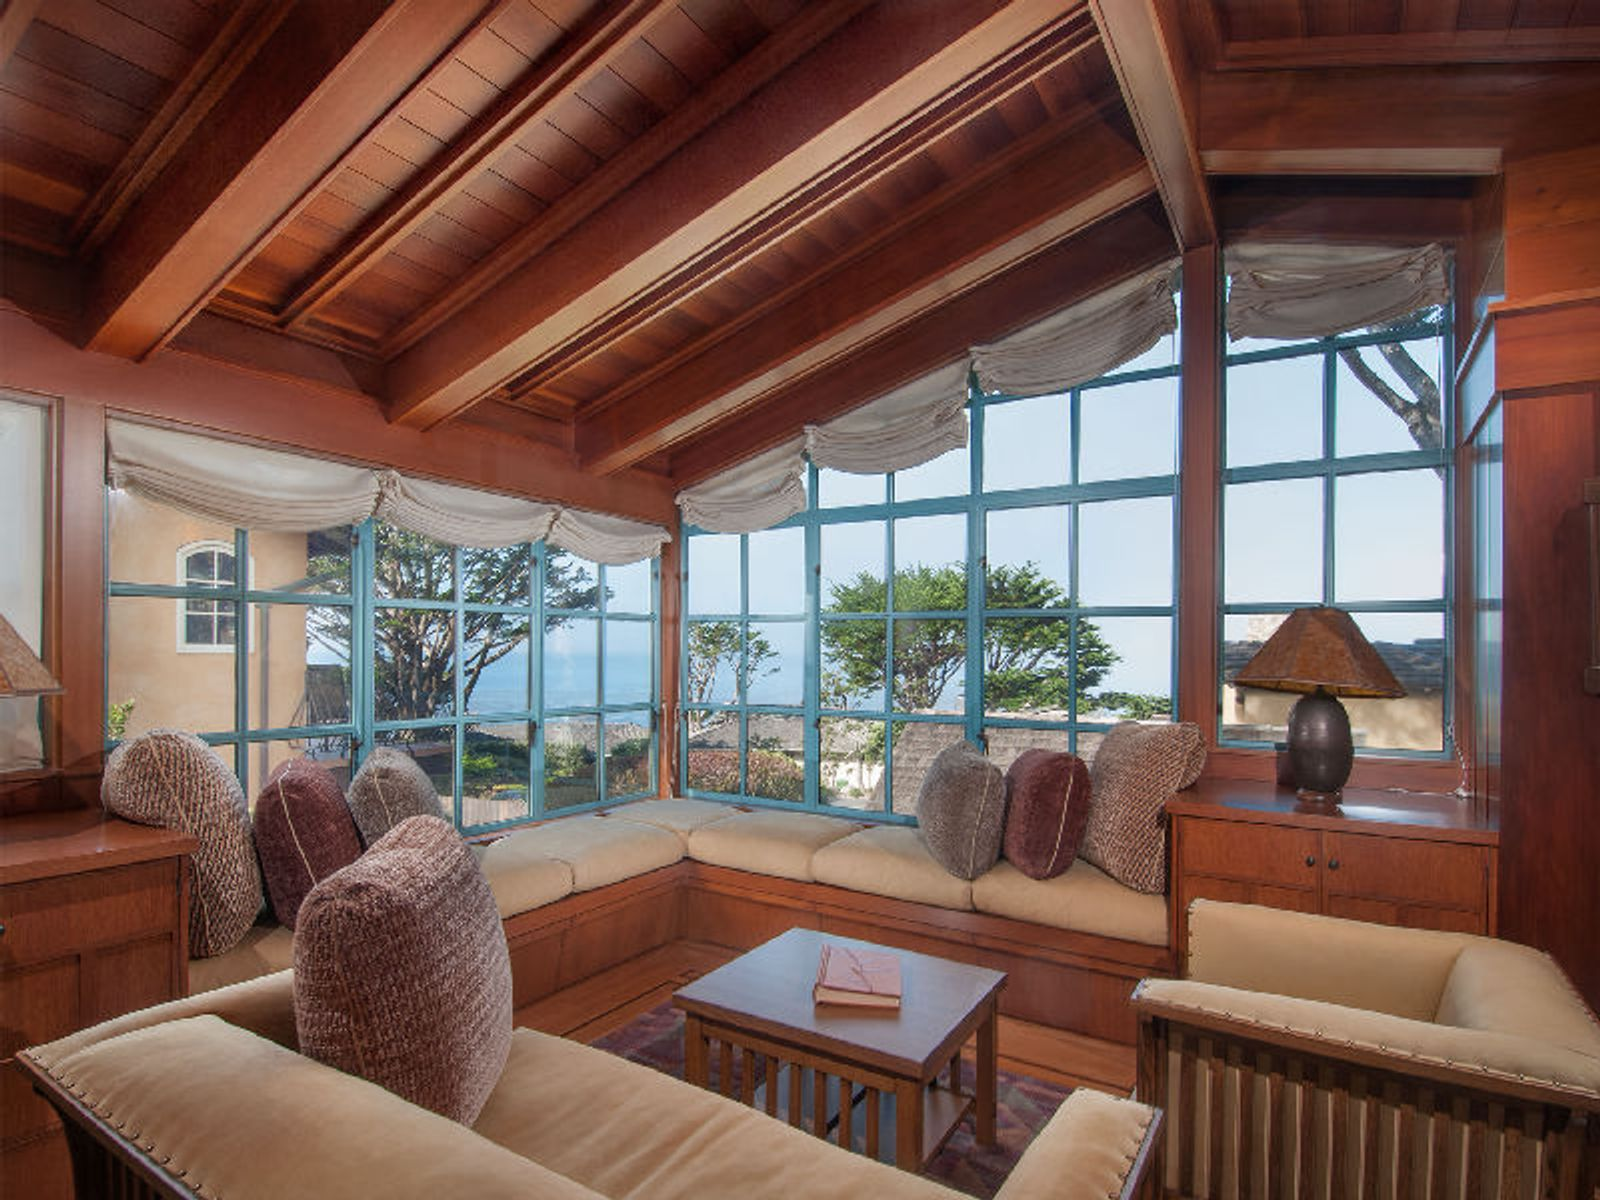 Equisite One-of-a-Kind Home by the Sea